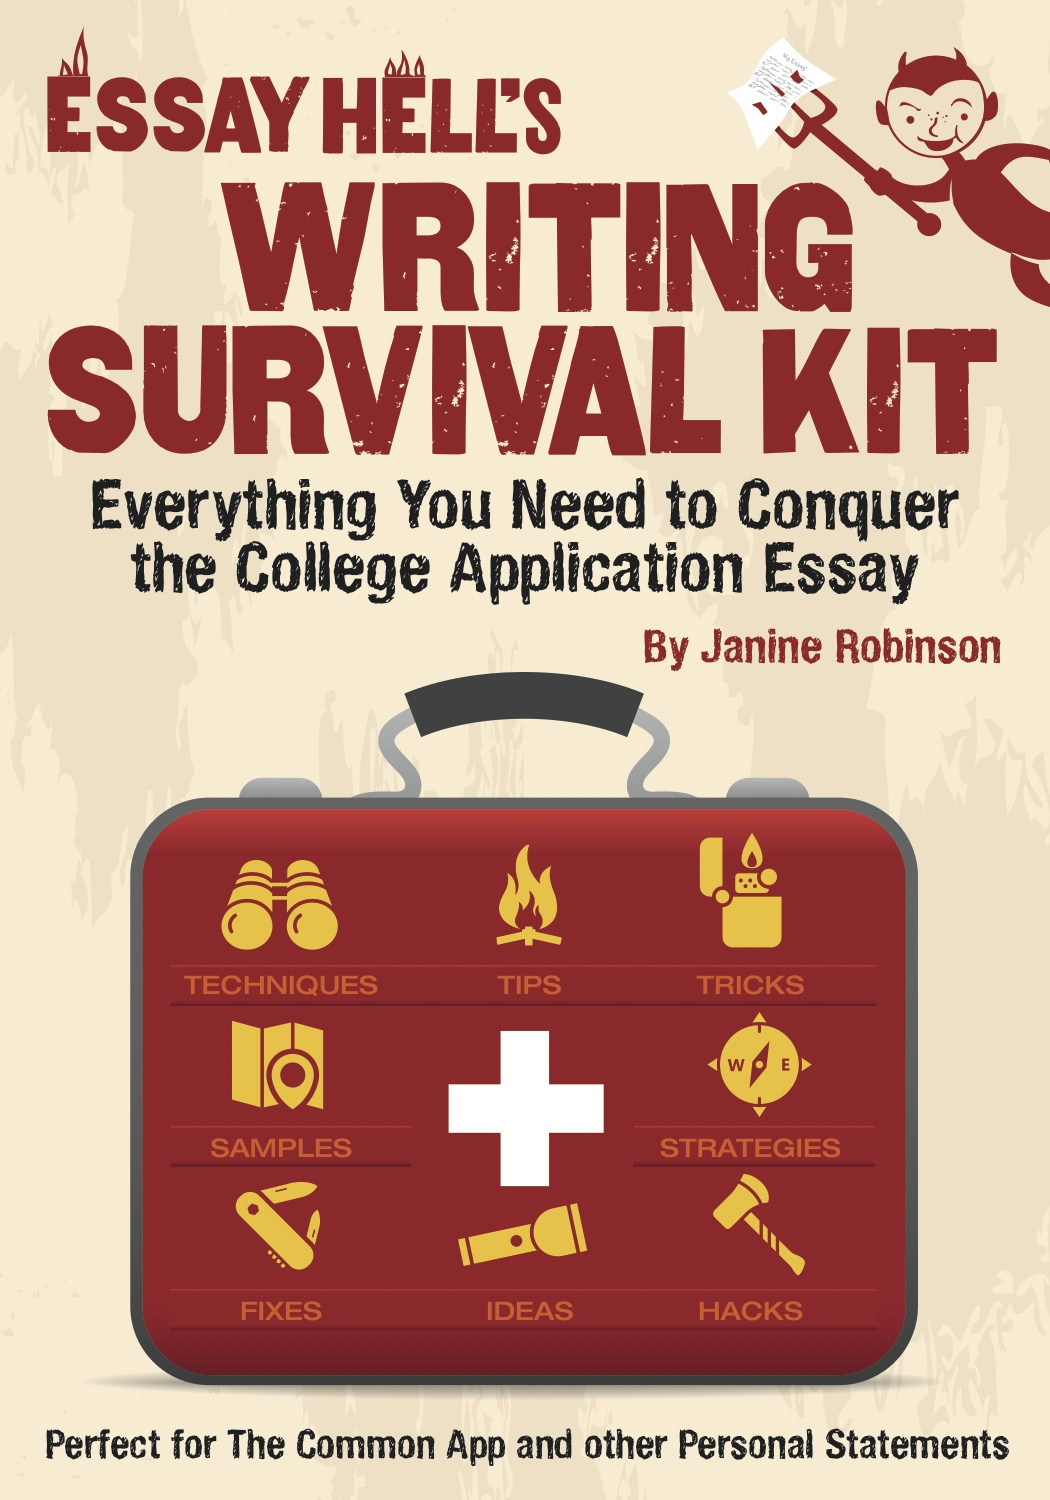 How in depth should I get in my application essay?